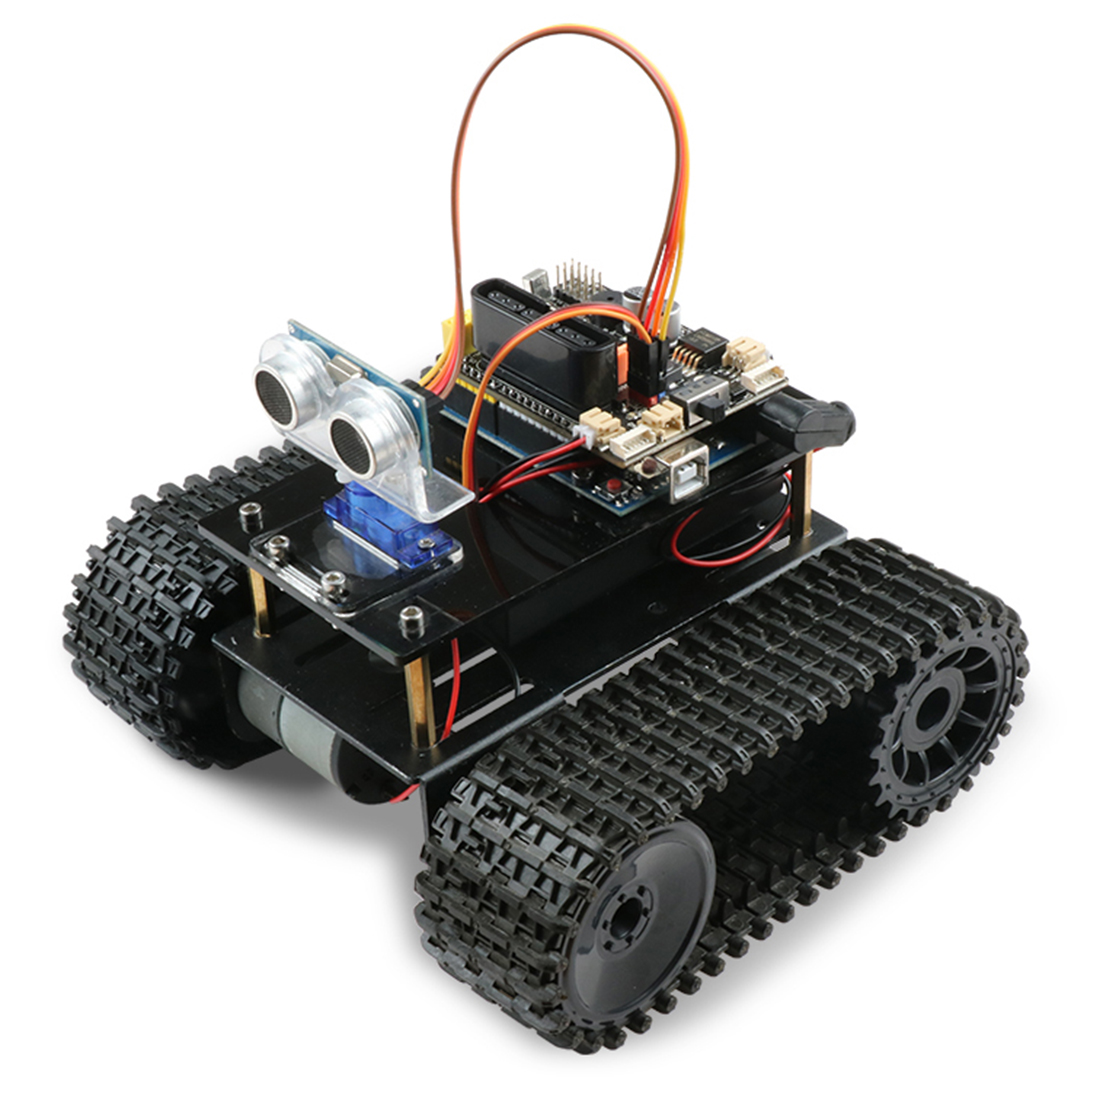 DIY Obstacle Avoidance Smart Programmable Robot Tank Educational Learning Kit For Arduino UNO High Tech Toy Gift For Christmas